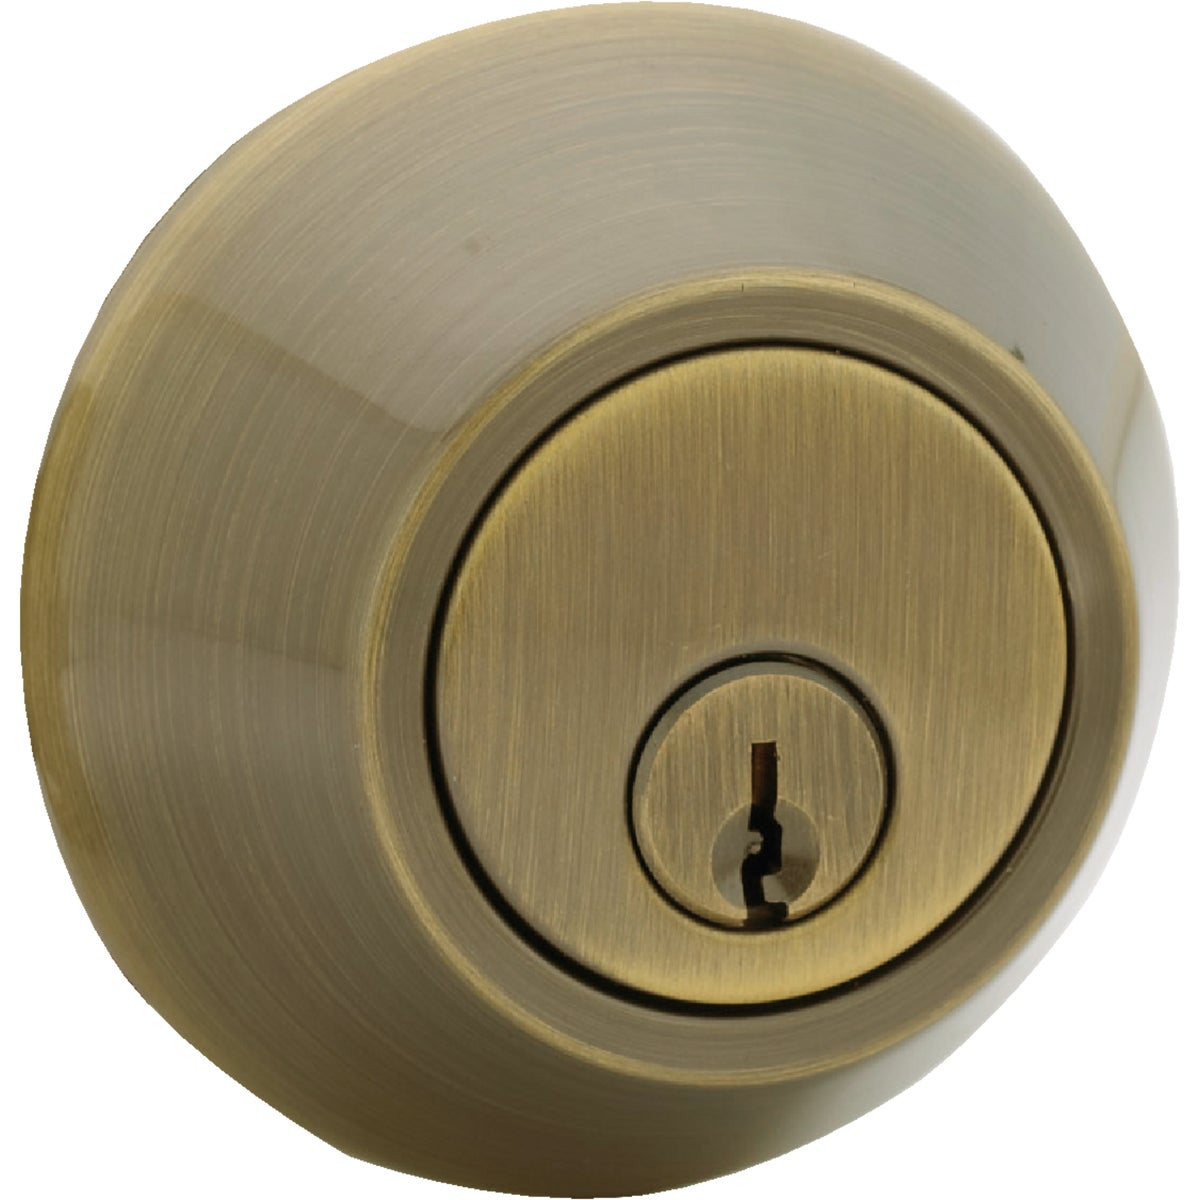 AB CP 2CYL DEADBOLT - D102AB by Do it Best